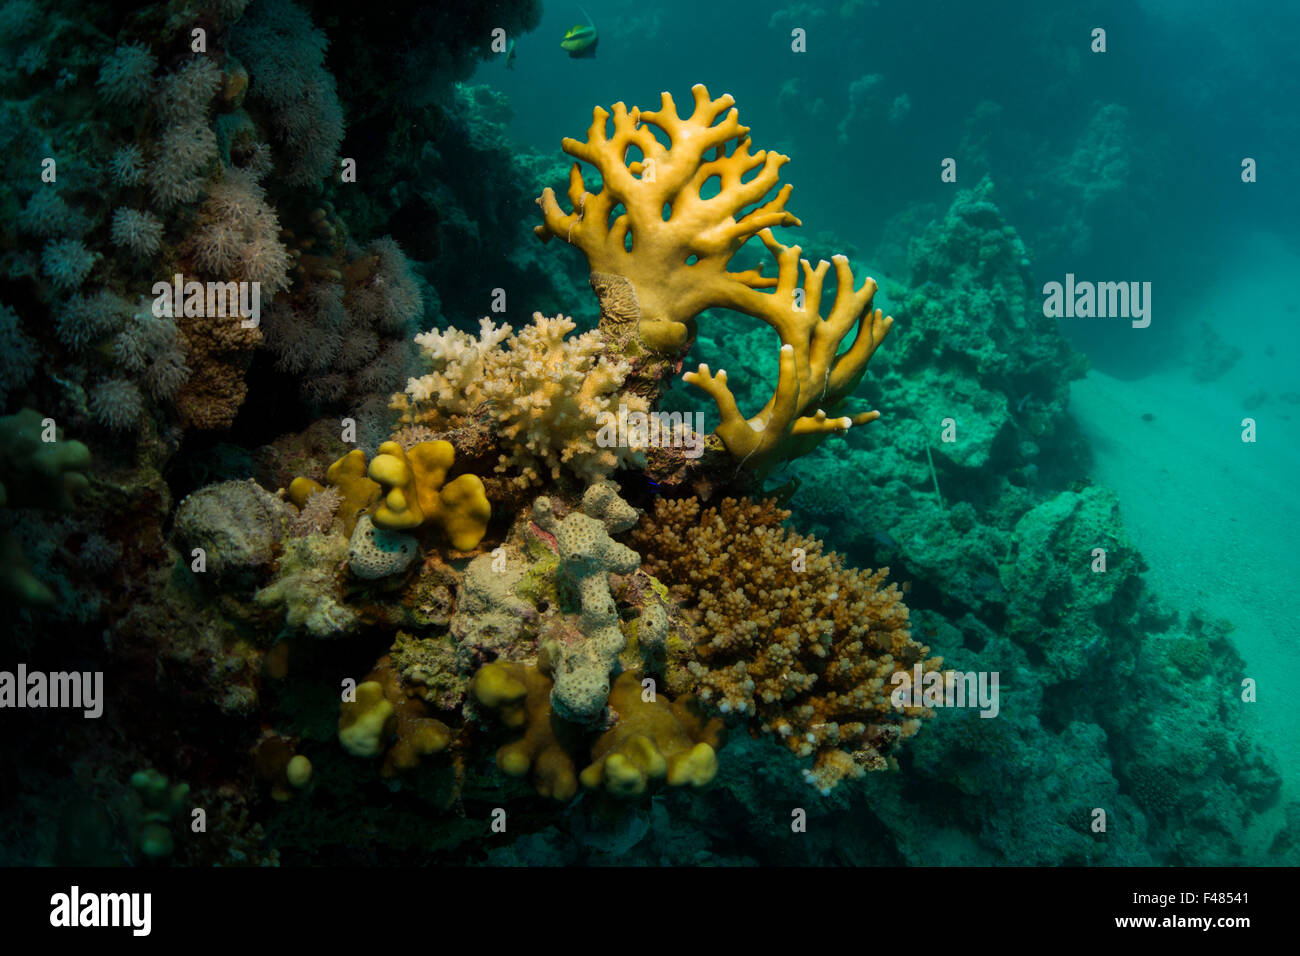 Staghorn coral and fire coral, Acropora spec., from the Red Sea, Southern Egypt. - Stock Image